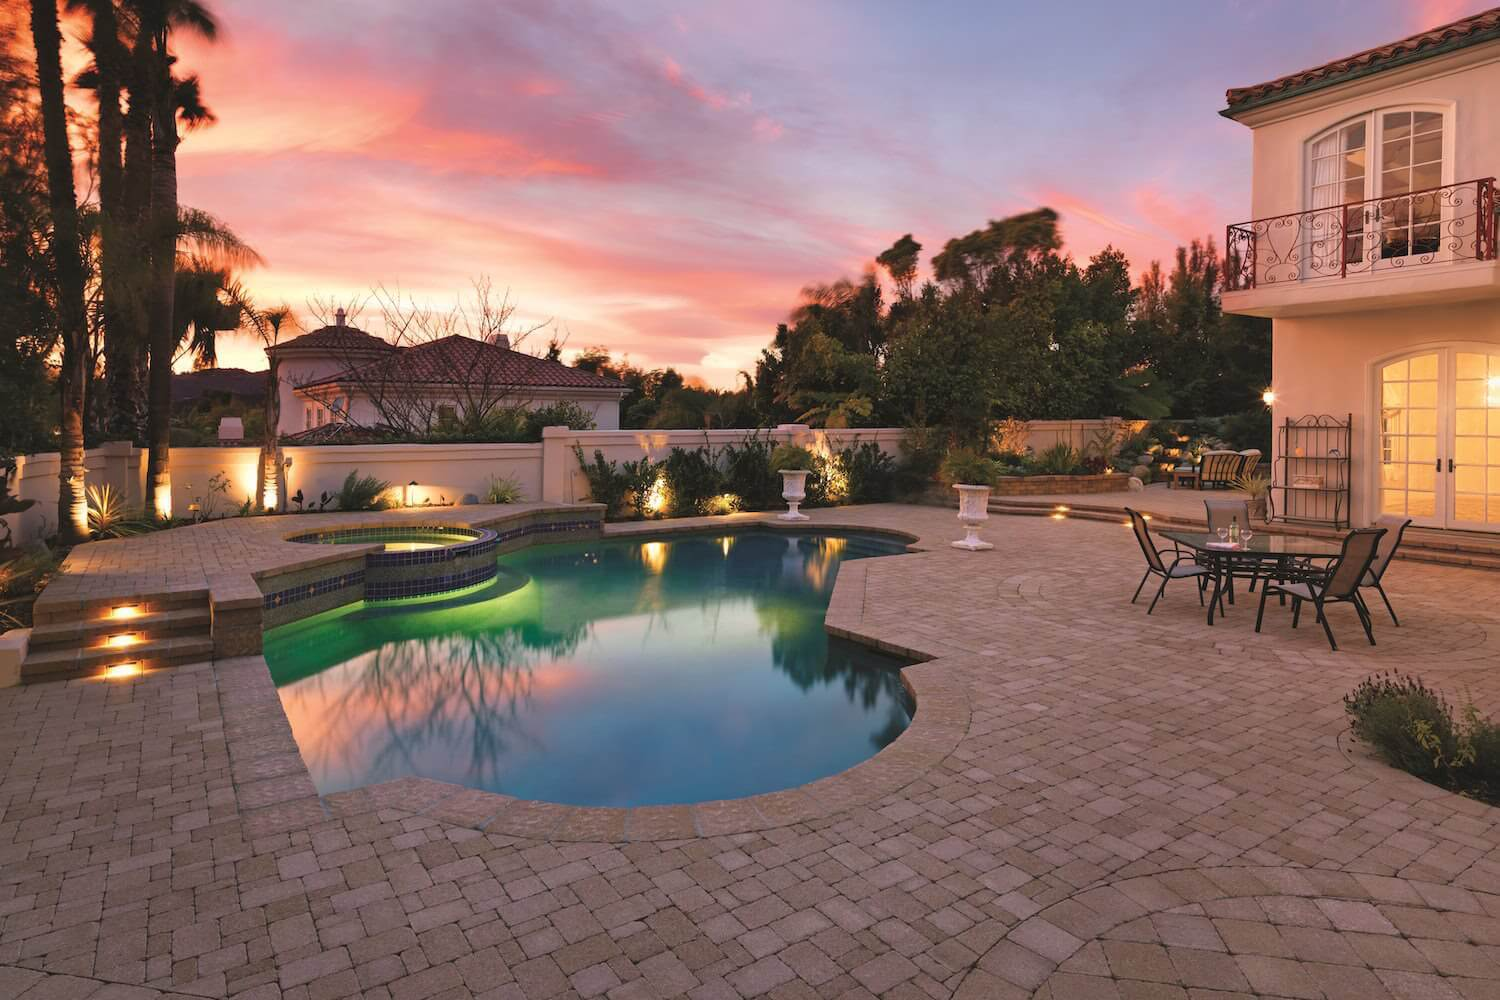 Design Blog Gallery - Southern California Swimming Pools